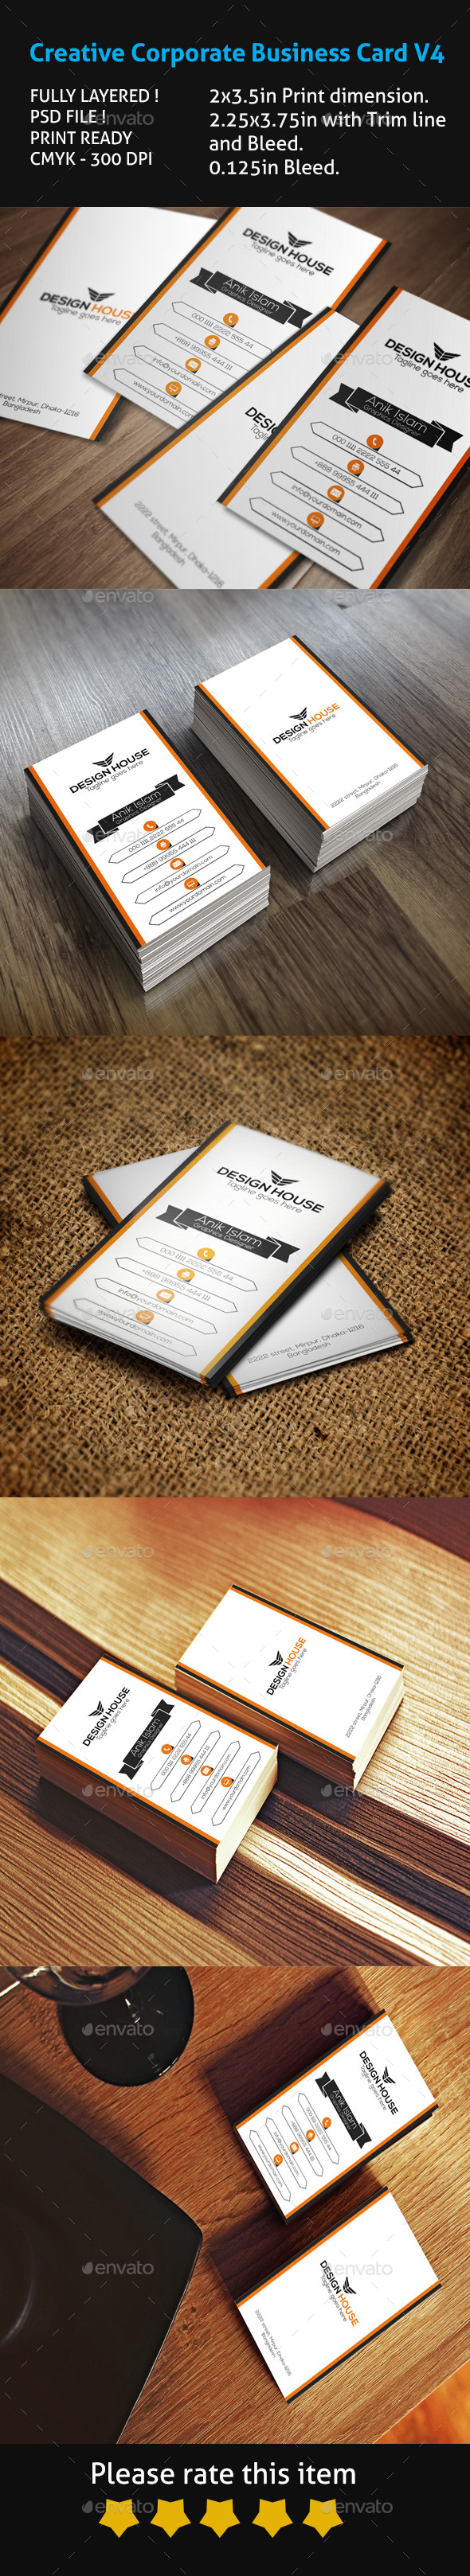 GraphicRiver Creative Corporate Business Card V4 10463275